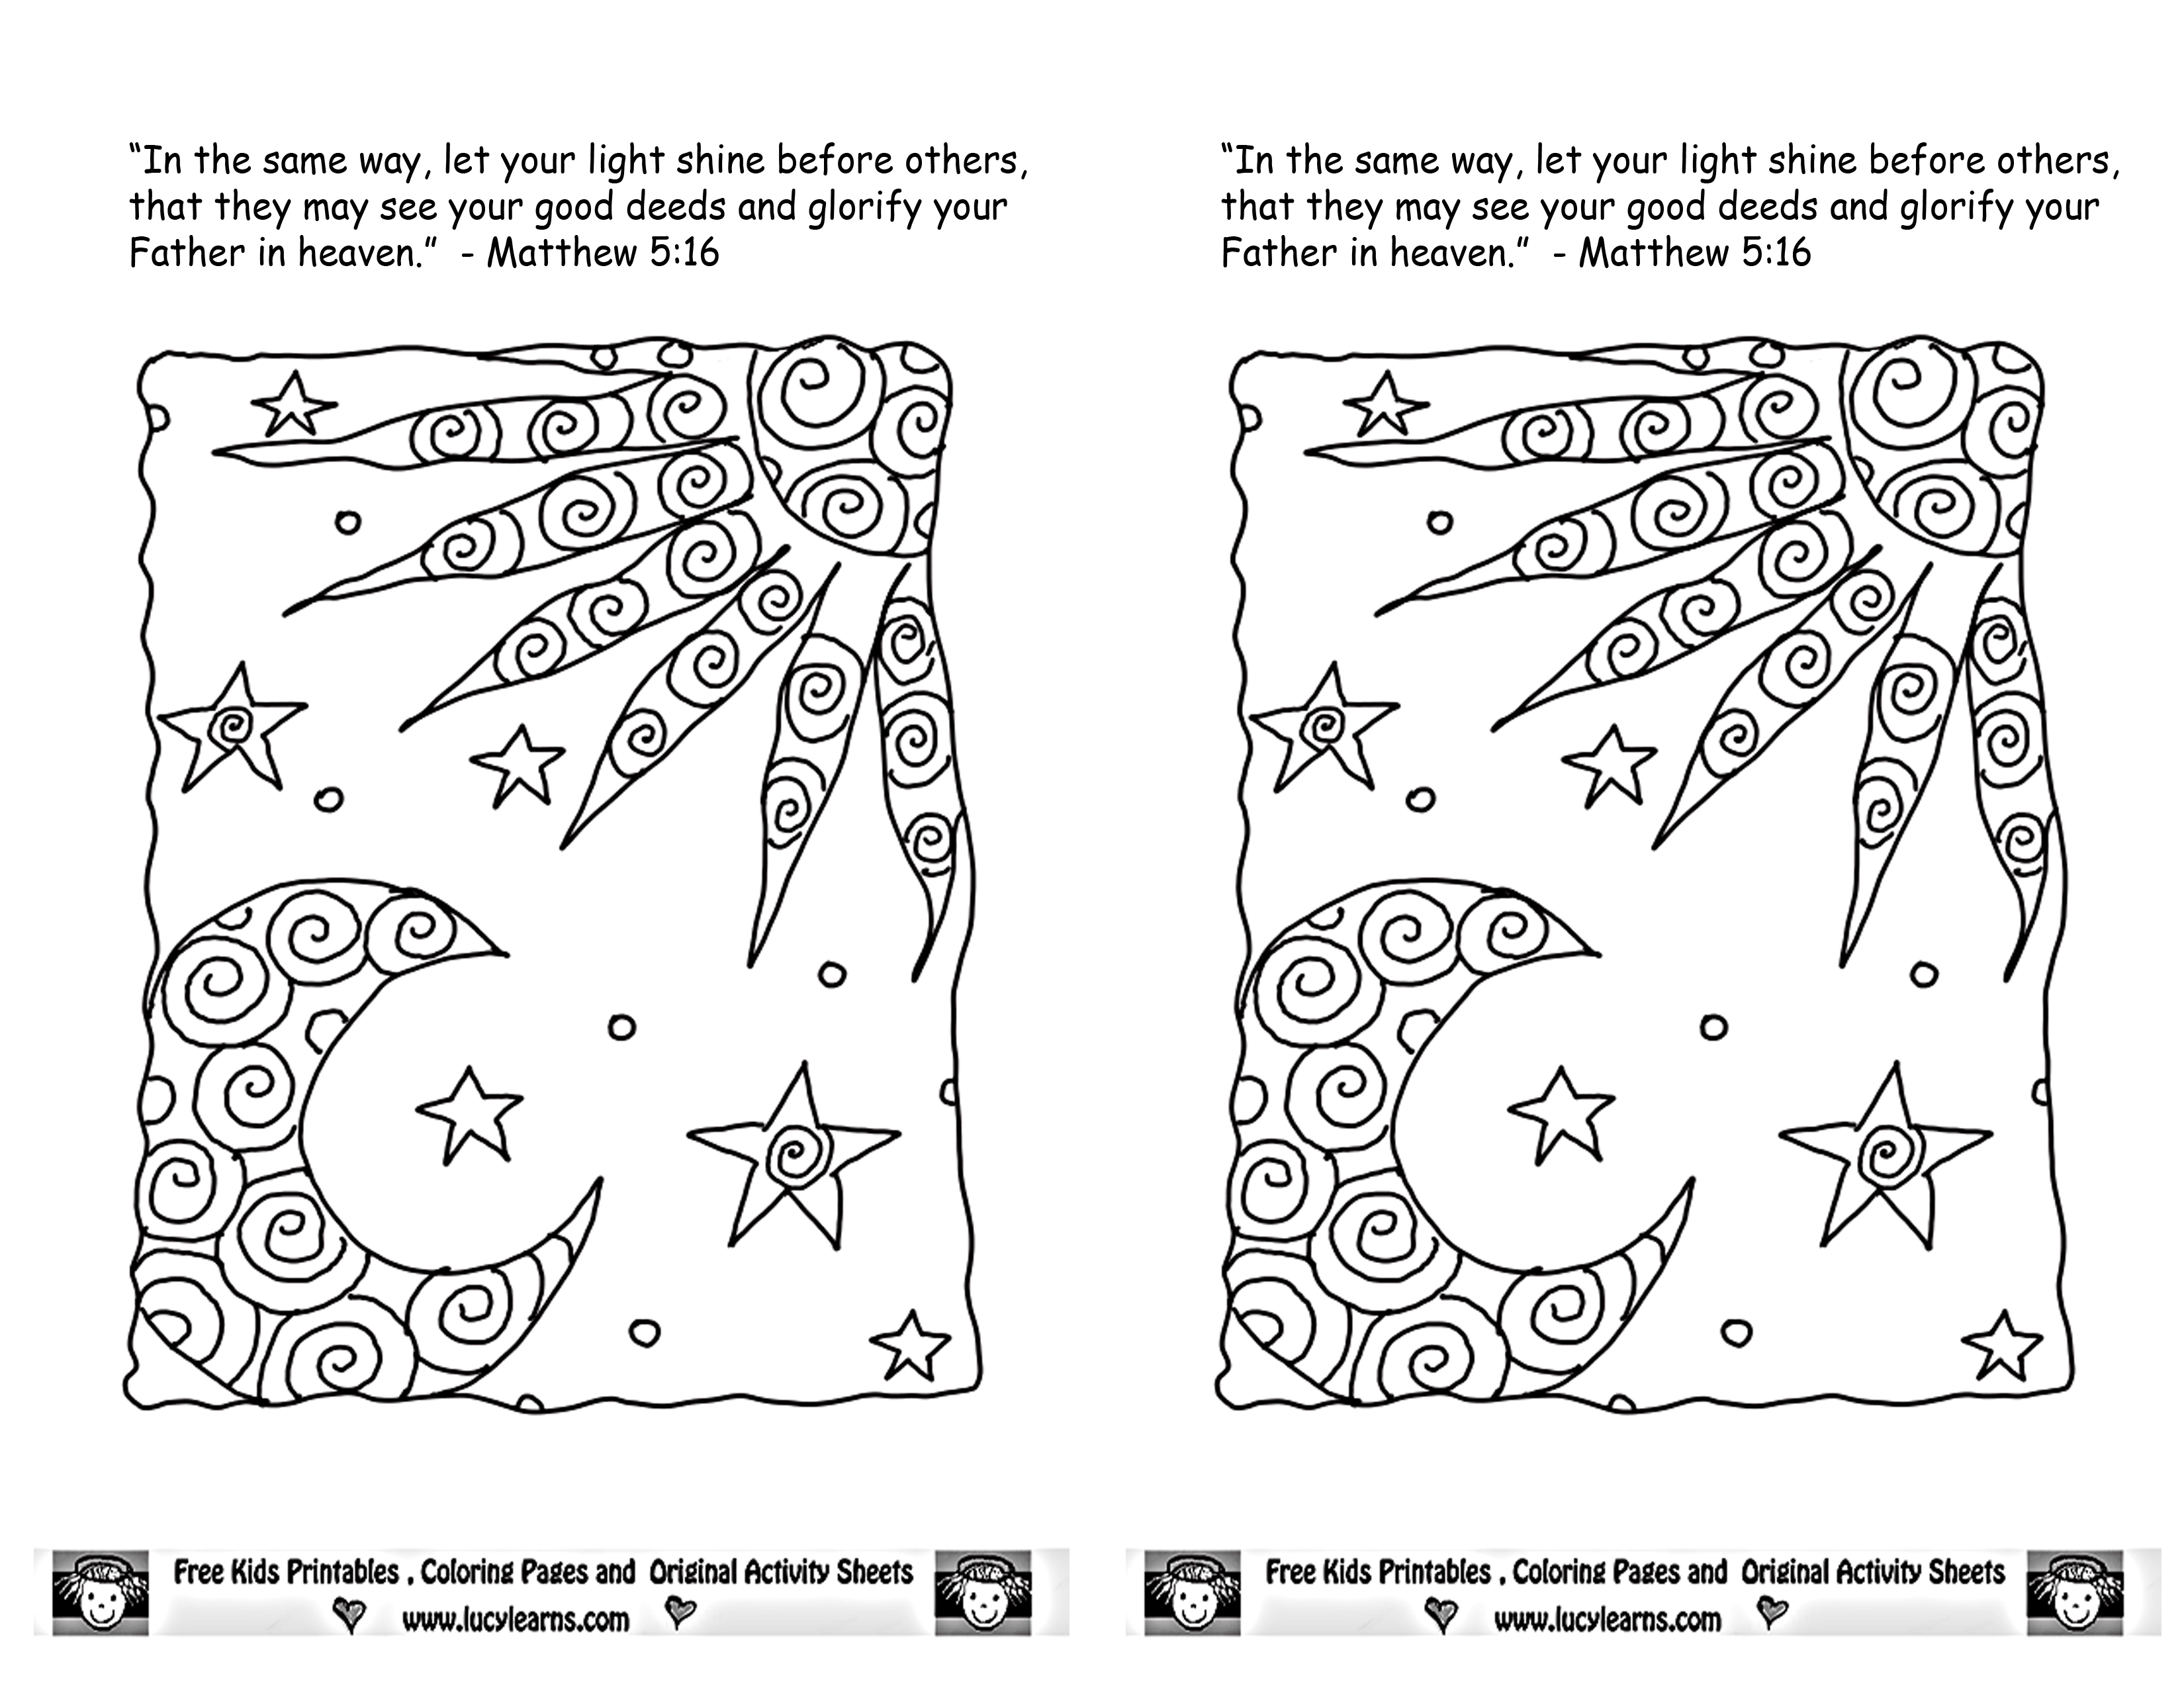 salt and light coloring page - free bible lessons fearfully and wonderfully made